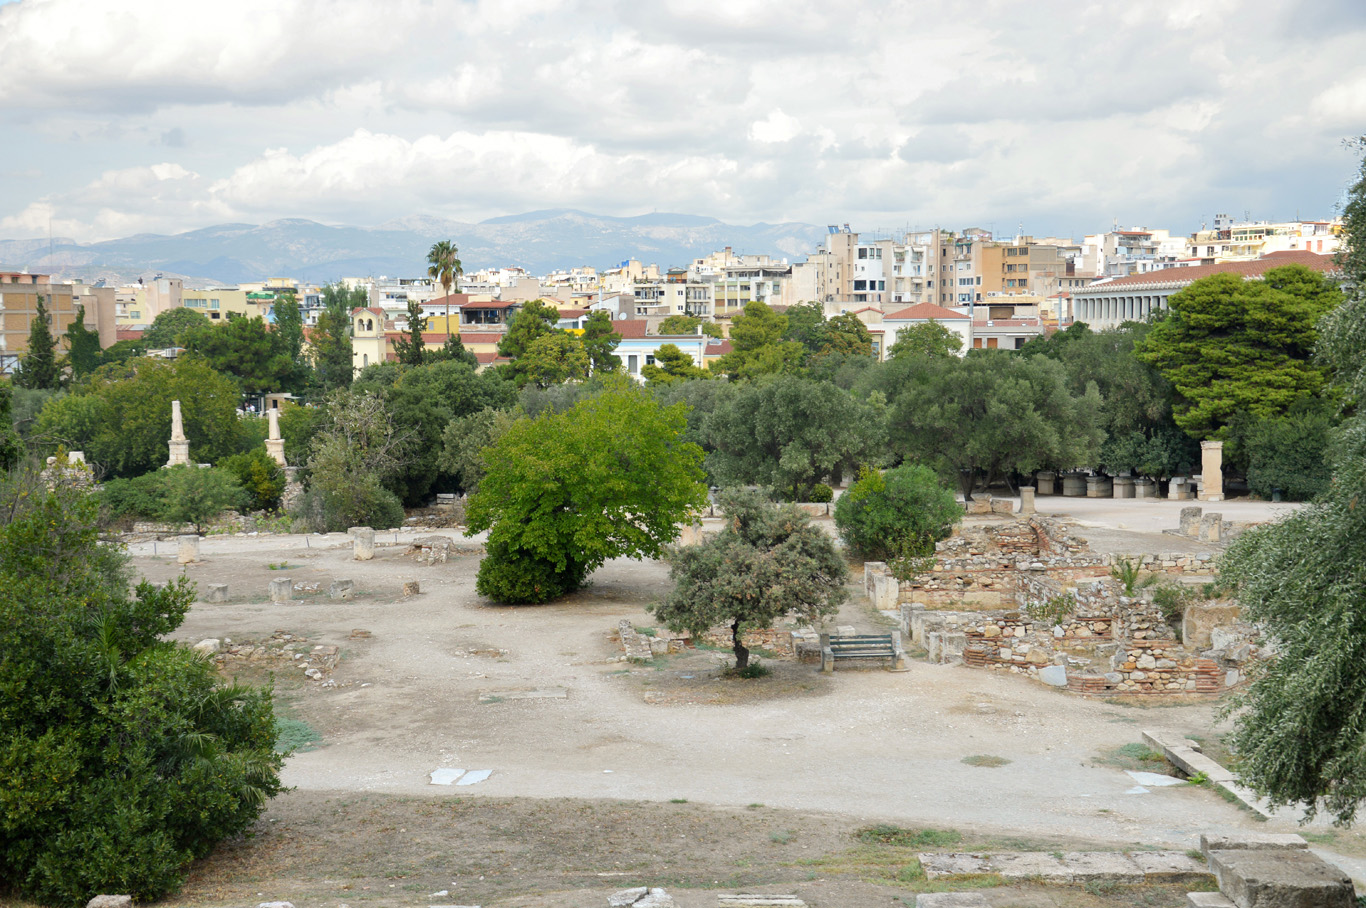 Ancient ruins and modern city in the background